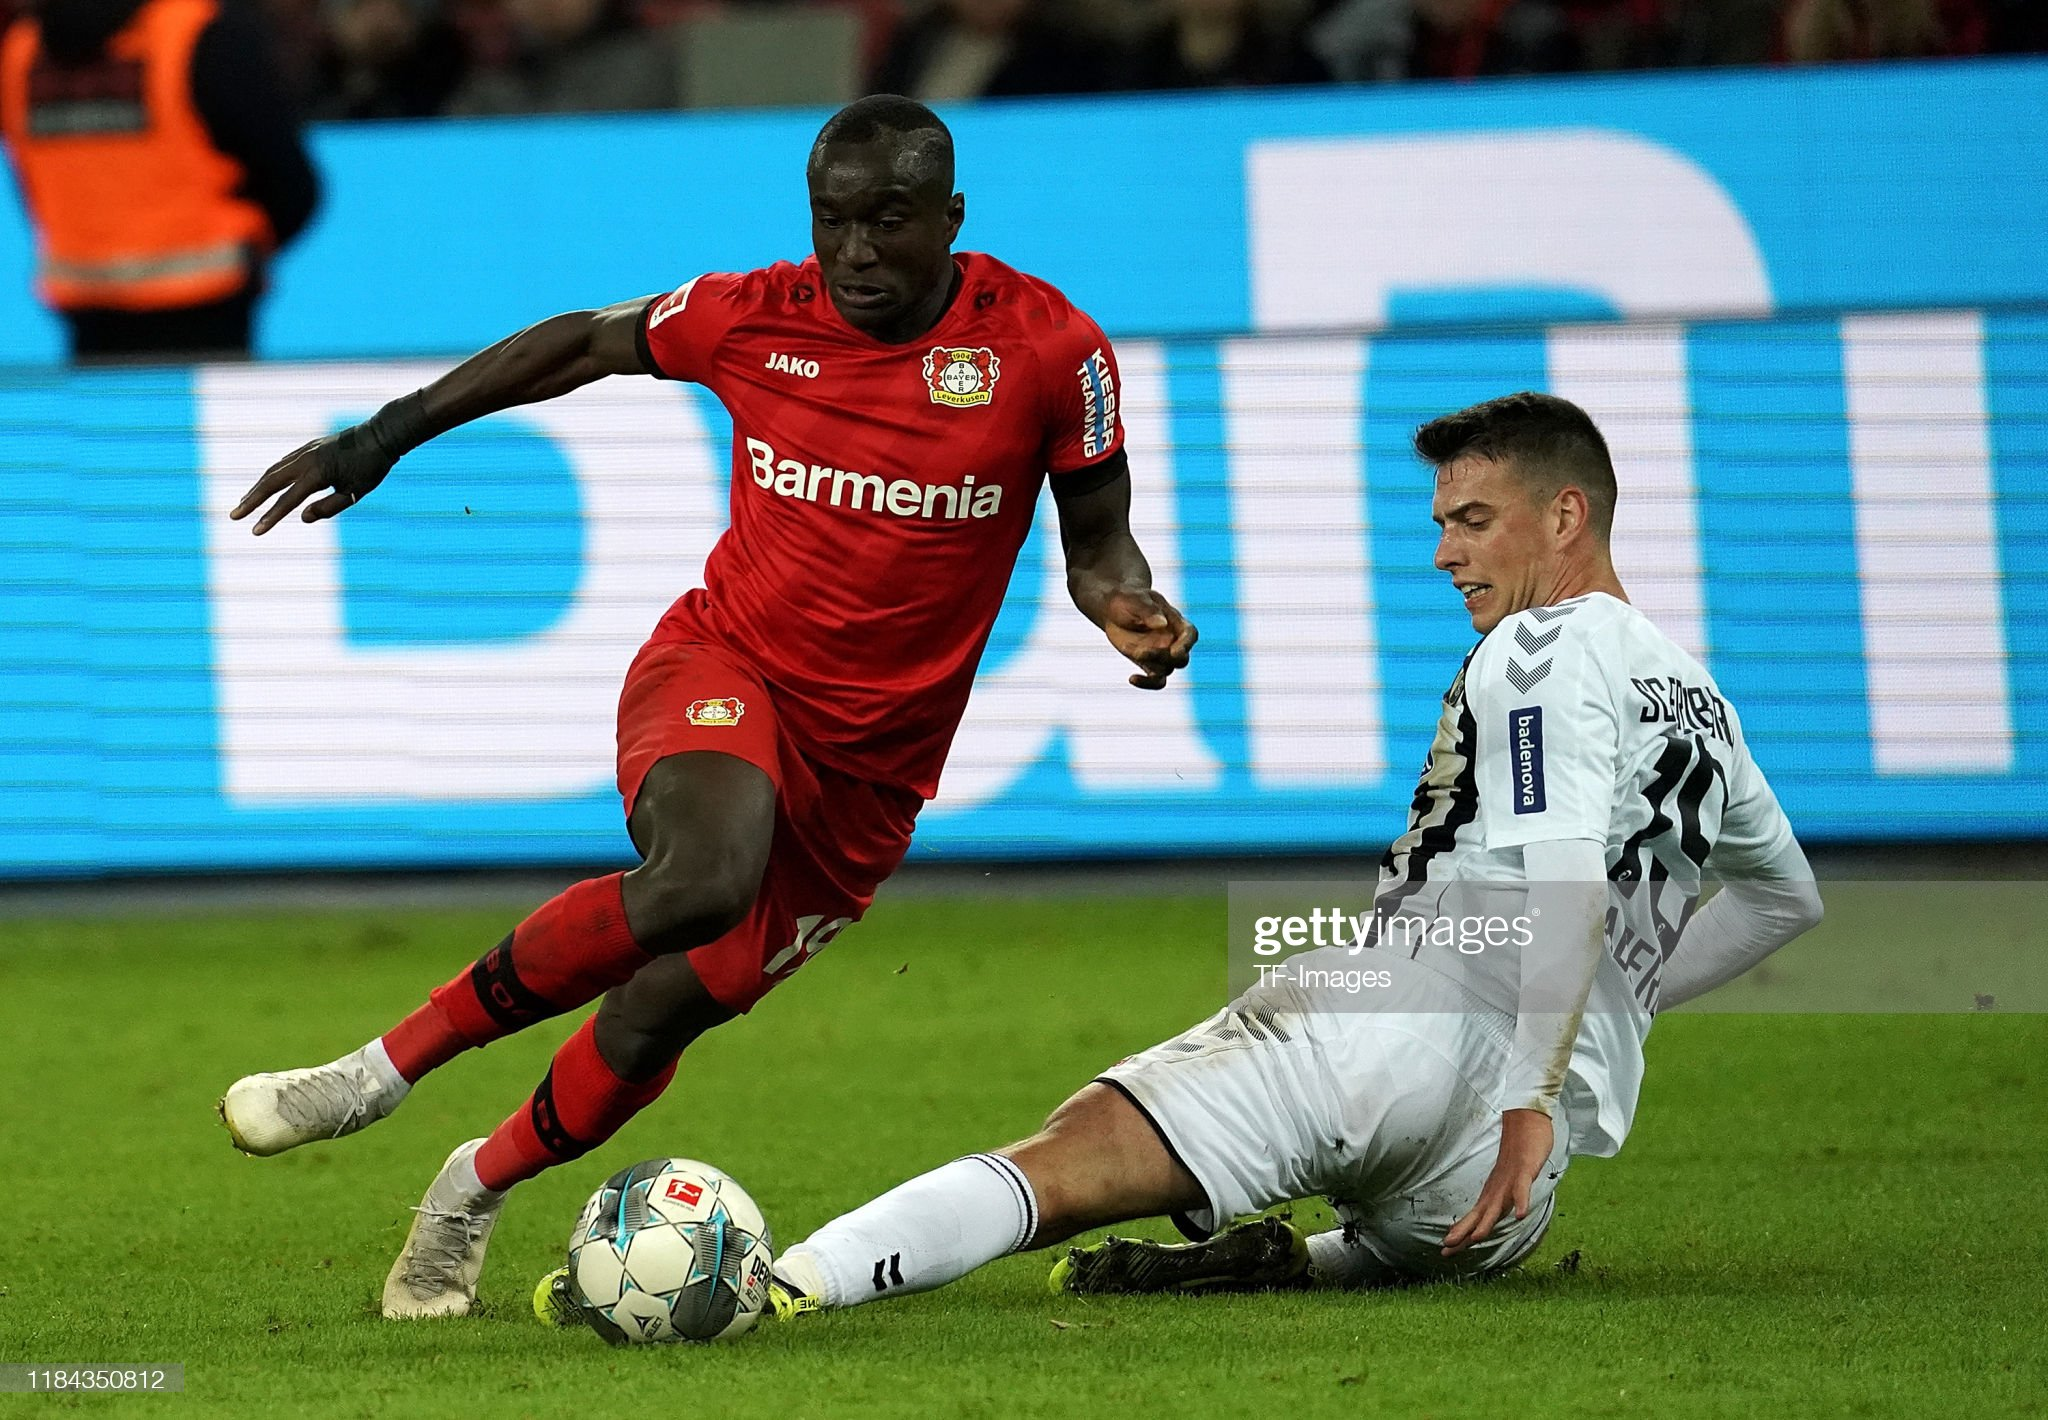 Freiburg vs Bayer Leverkusen Preview, prediction and odds